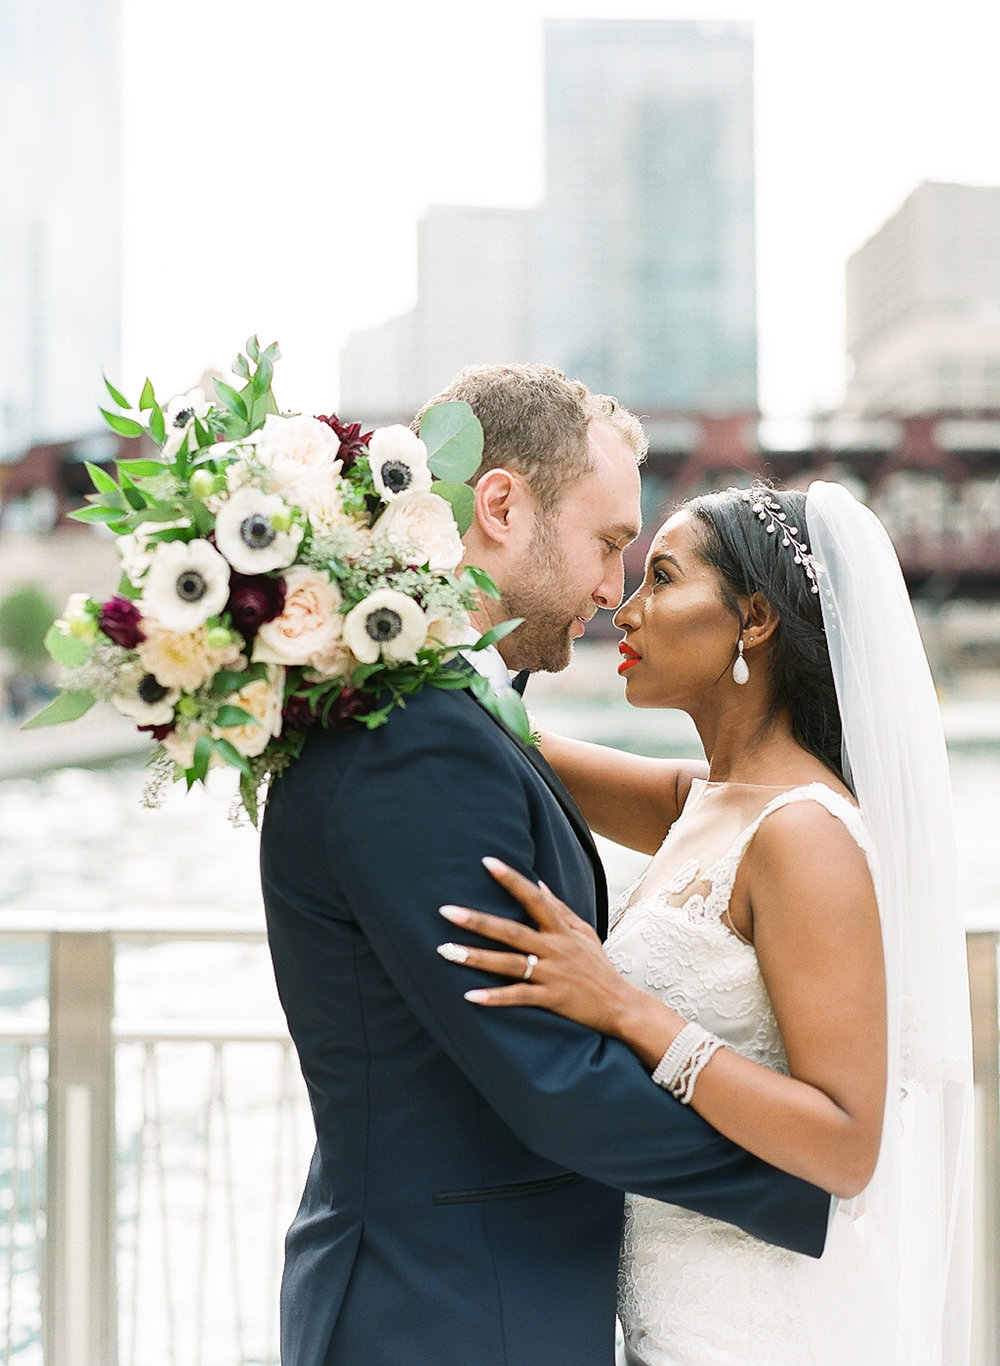 Bonphotage Chicago Fine Art Wedding Photography - Hotel Allegro